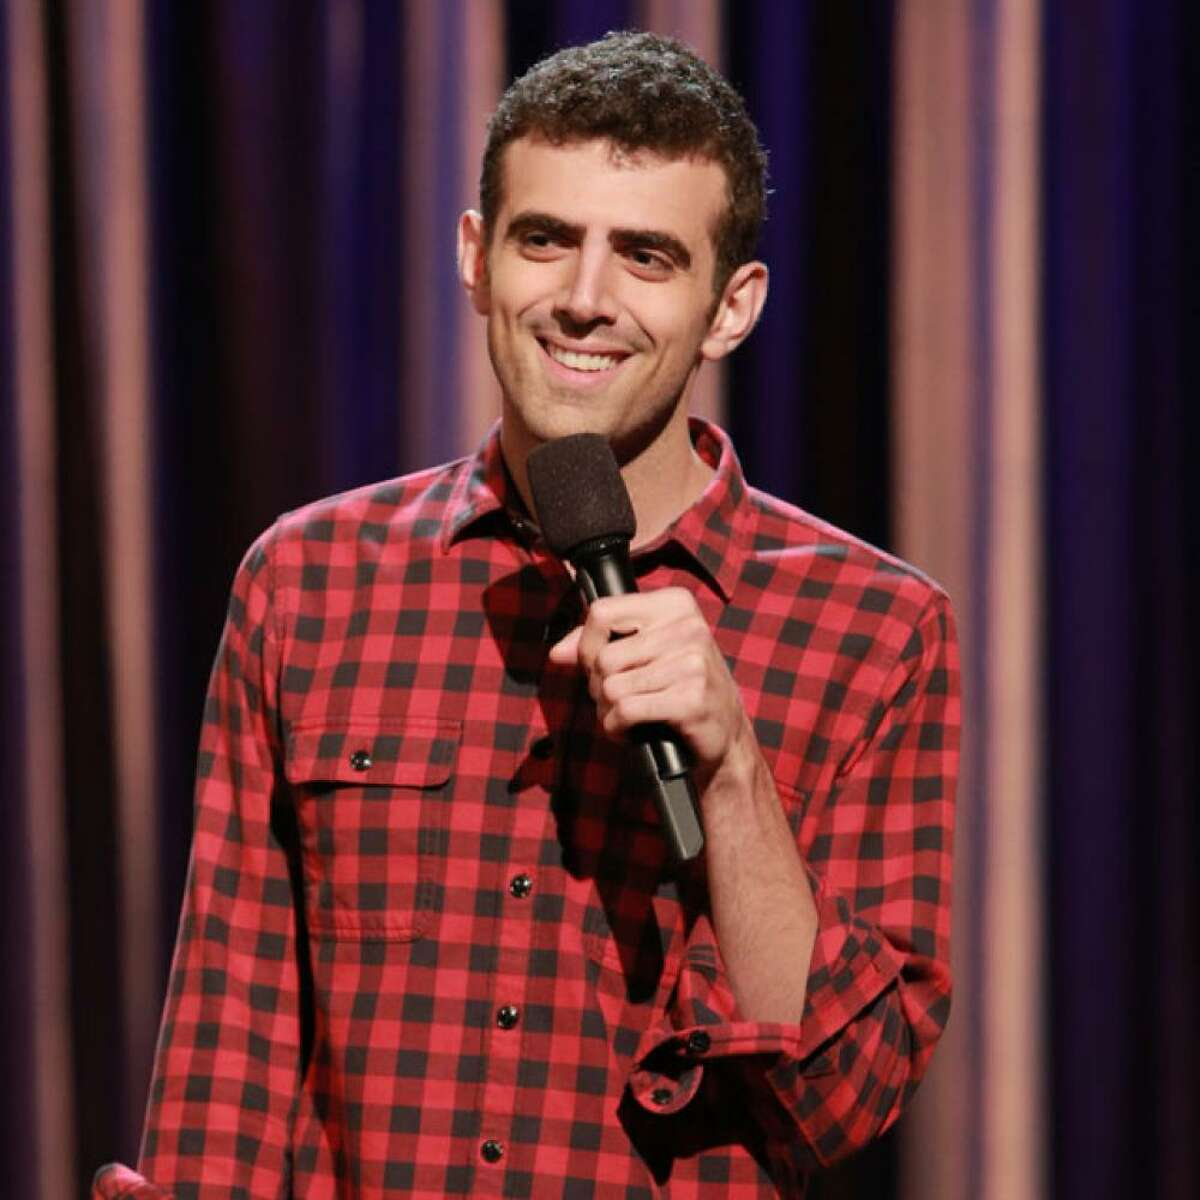 Sam Morril will be at Comix at Mohegan Sun for four performances June 29 to July 1.